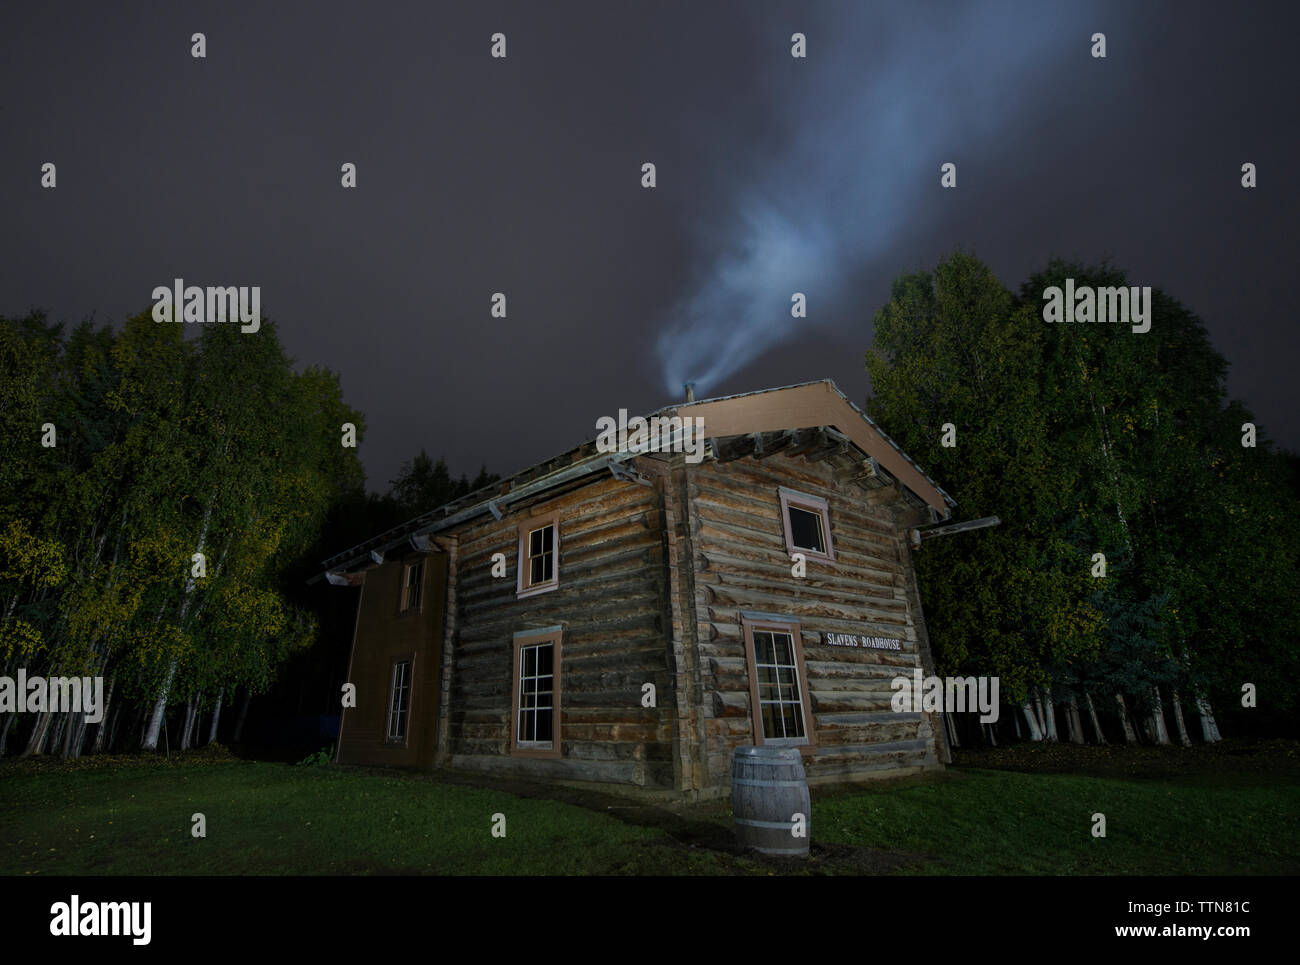 Smoke emitting from chimney on Slaven's roadhouse by trees at Yukon Charley Rivers National Preserve against sky at night Stock Photo